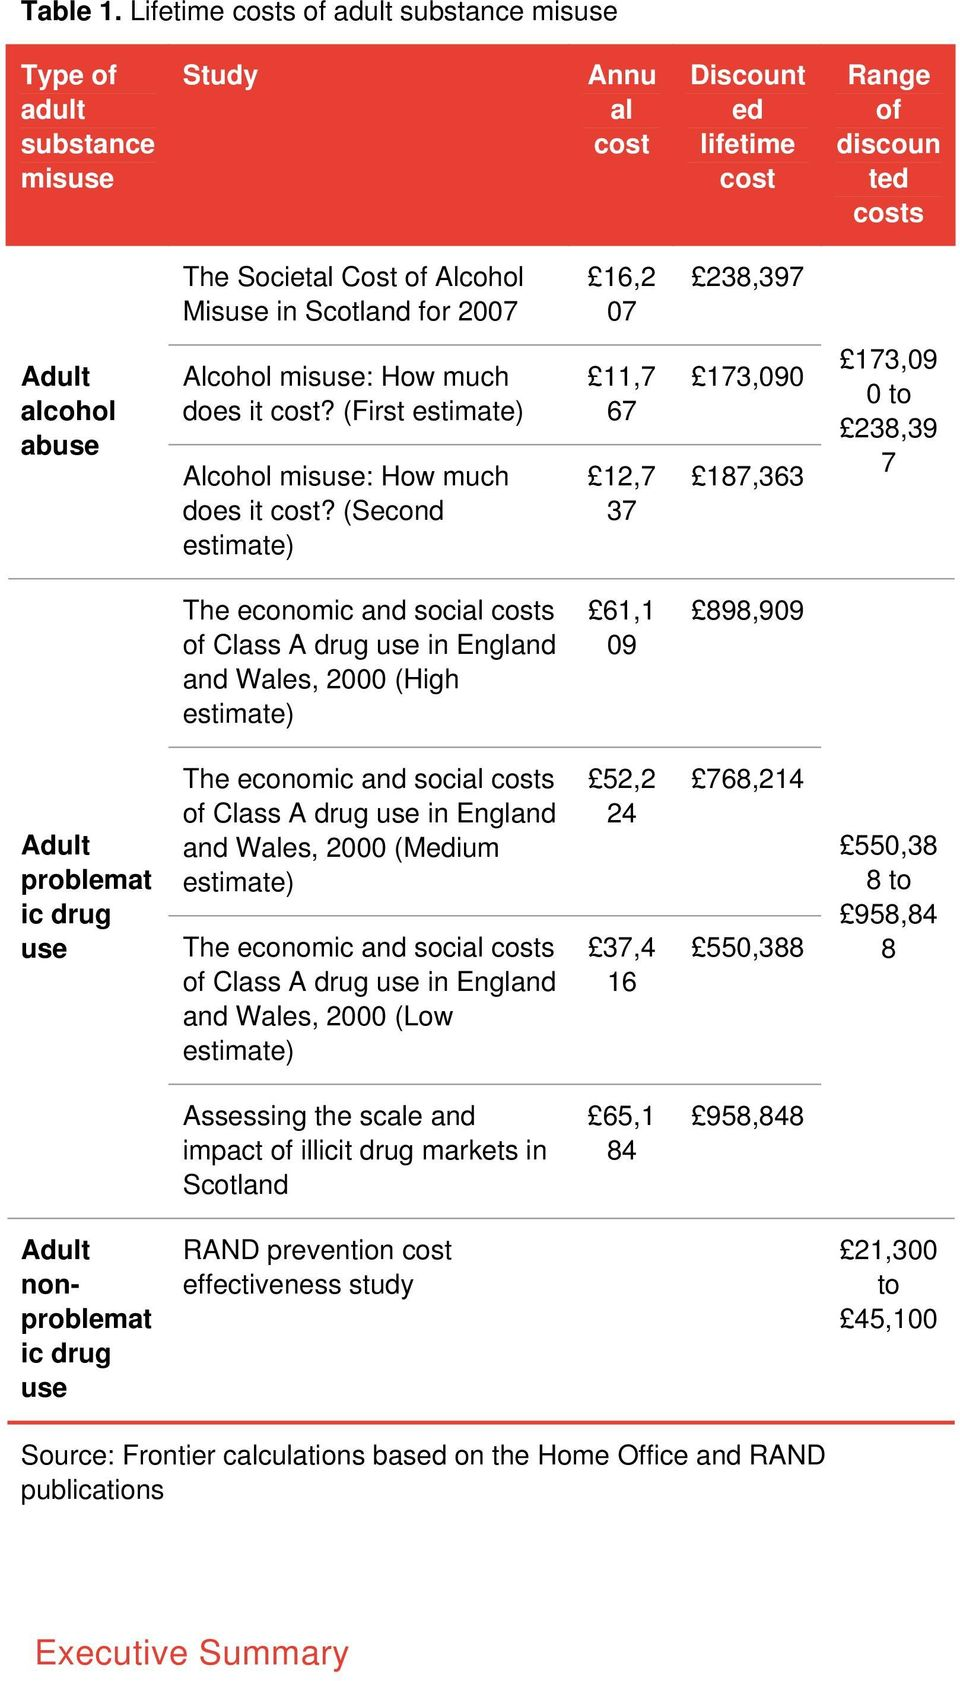 2007 16,2 07 238,397 Adult alcohol abuse Alcohol misuse: How much does it cost? (First estimate) Alcohol misuse: How much does it cost?